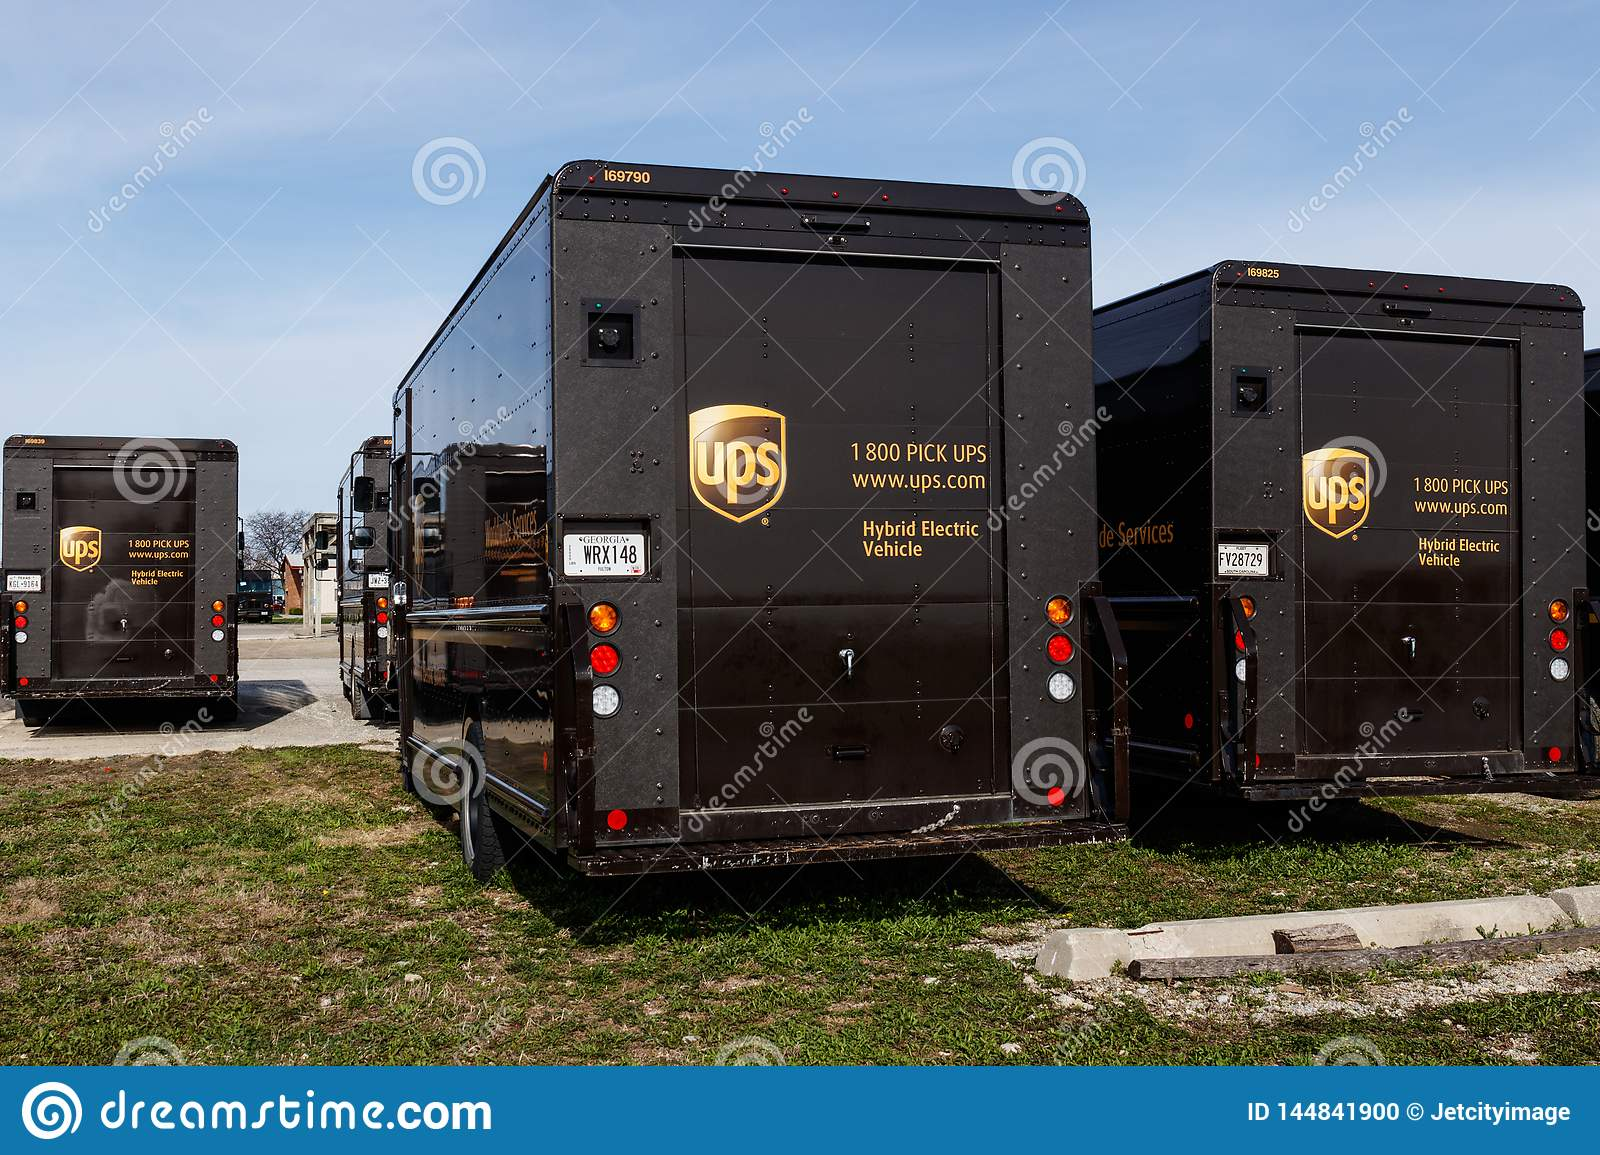 United Parcel Service hybrid electric vehicles. UPS is the World`s Largest Package Delivery Company III